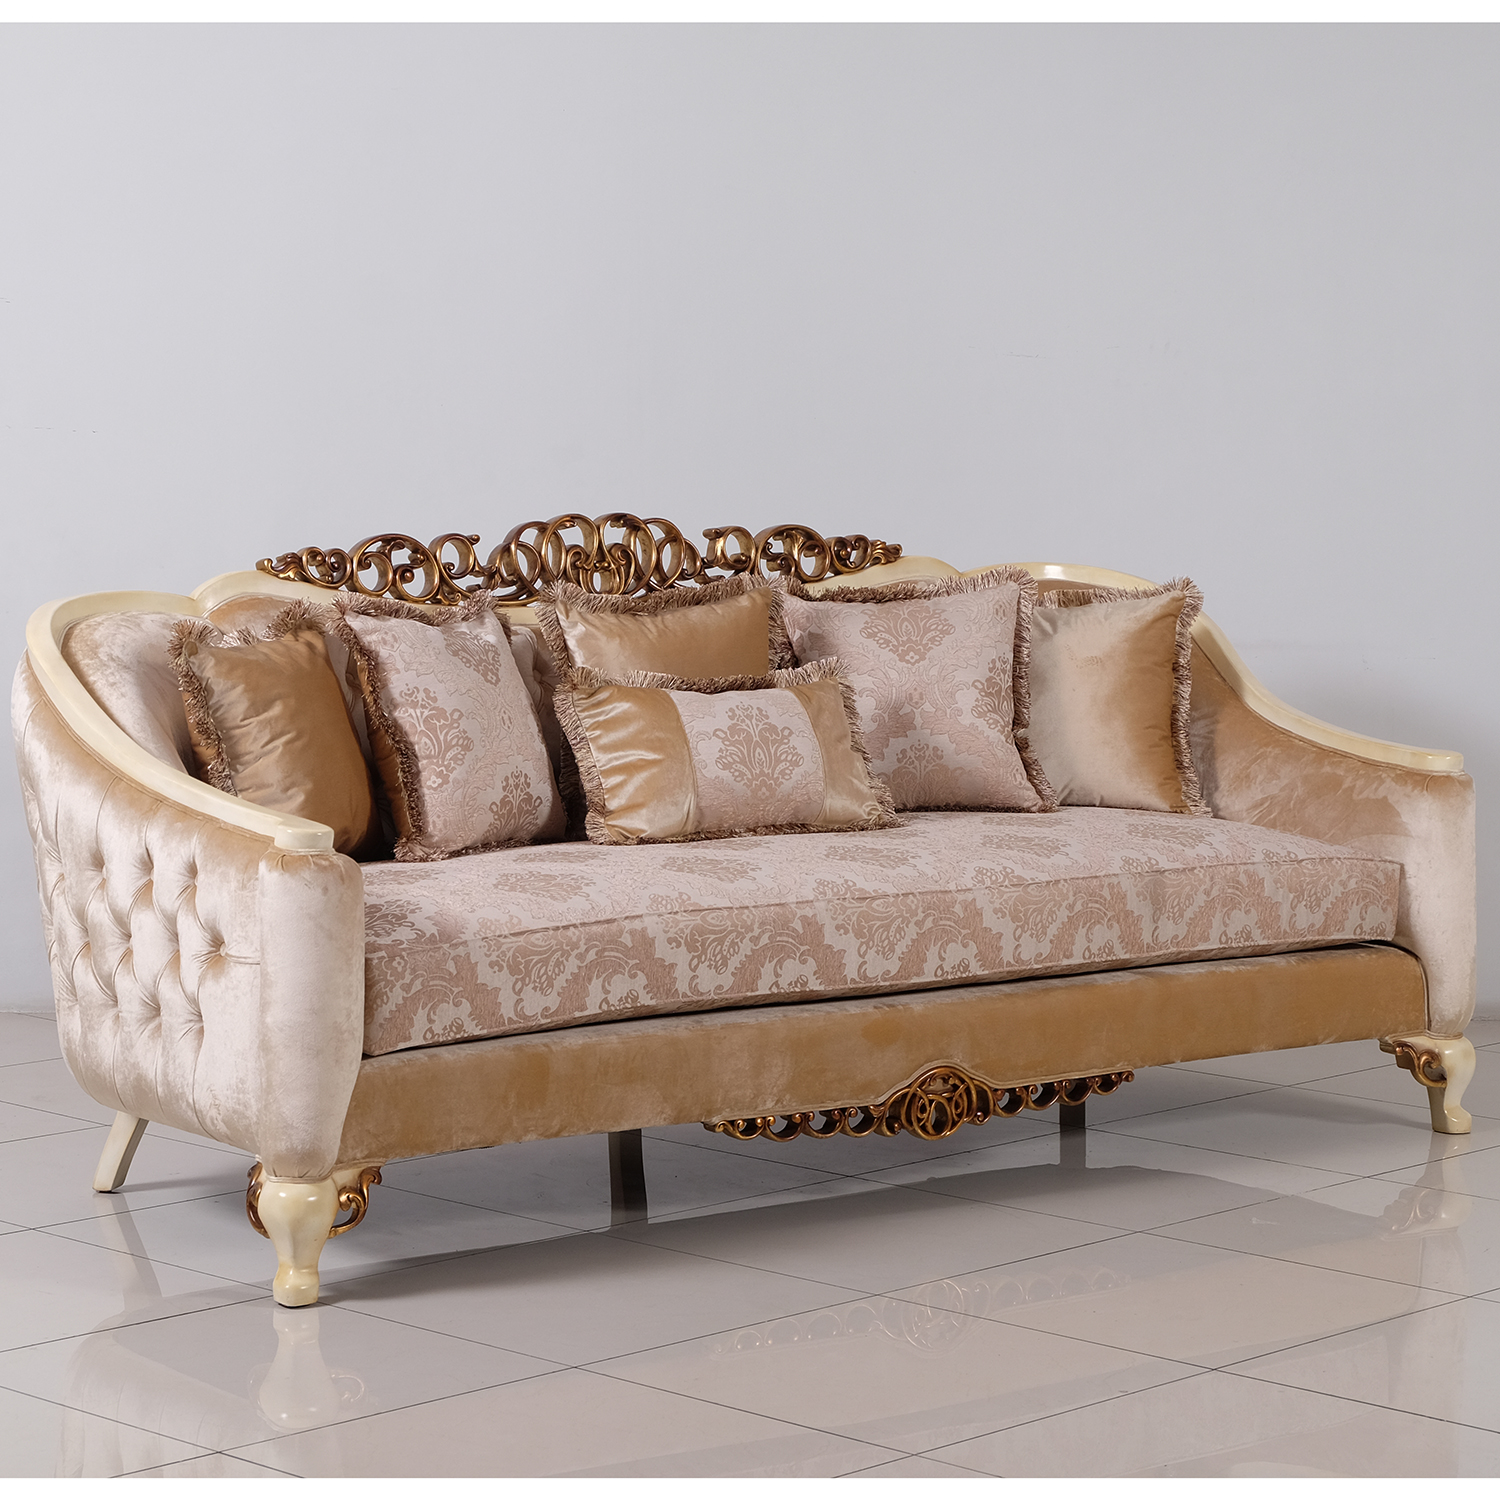 Grand European Luxury Furniture 45350 S Angelica Sofa In Tufted Fabric On Antique Beige Gold Mahogany